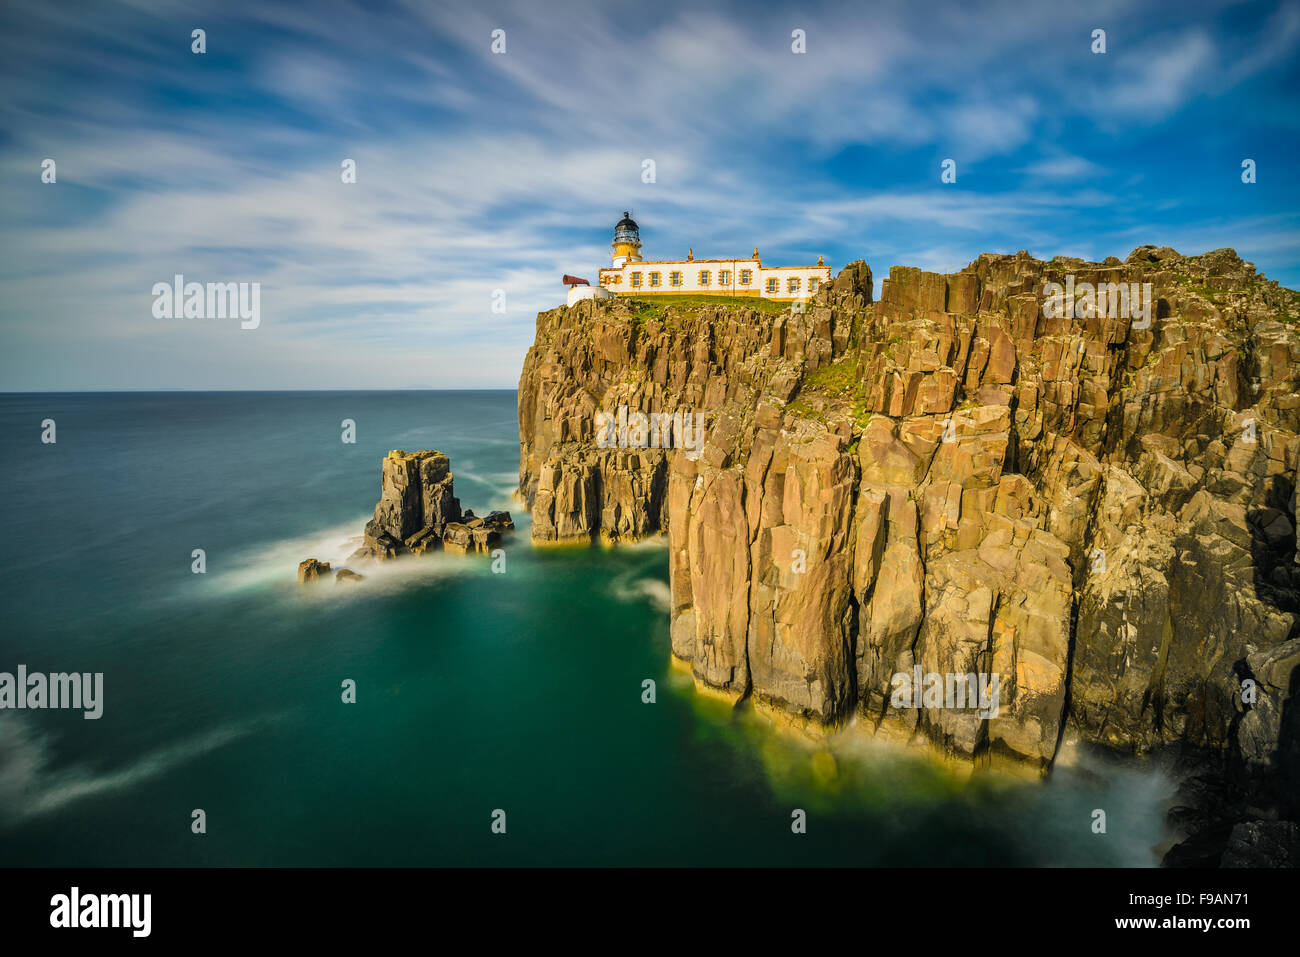 Neist Point lighthouse at Isle of Skye, Scottish highlands, United Kingdom. Long exposure - Stock Image